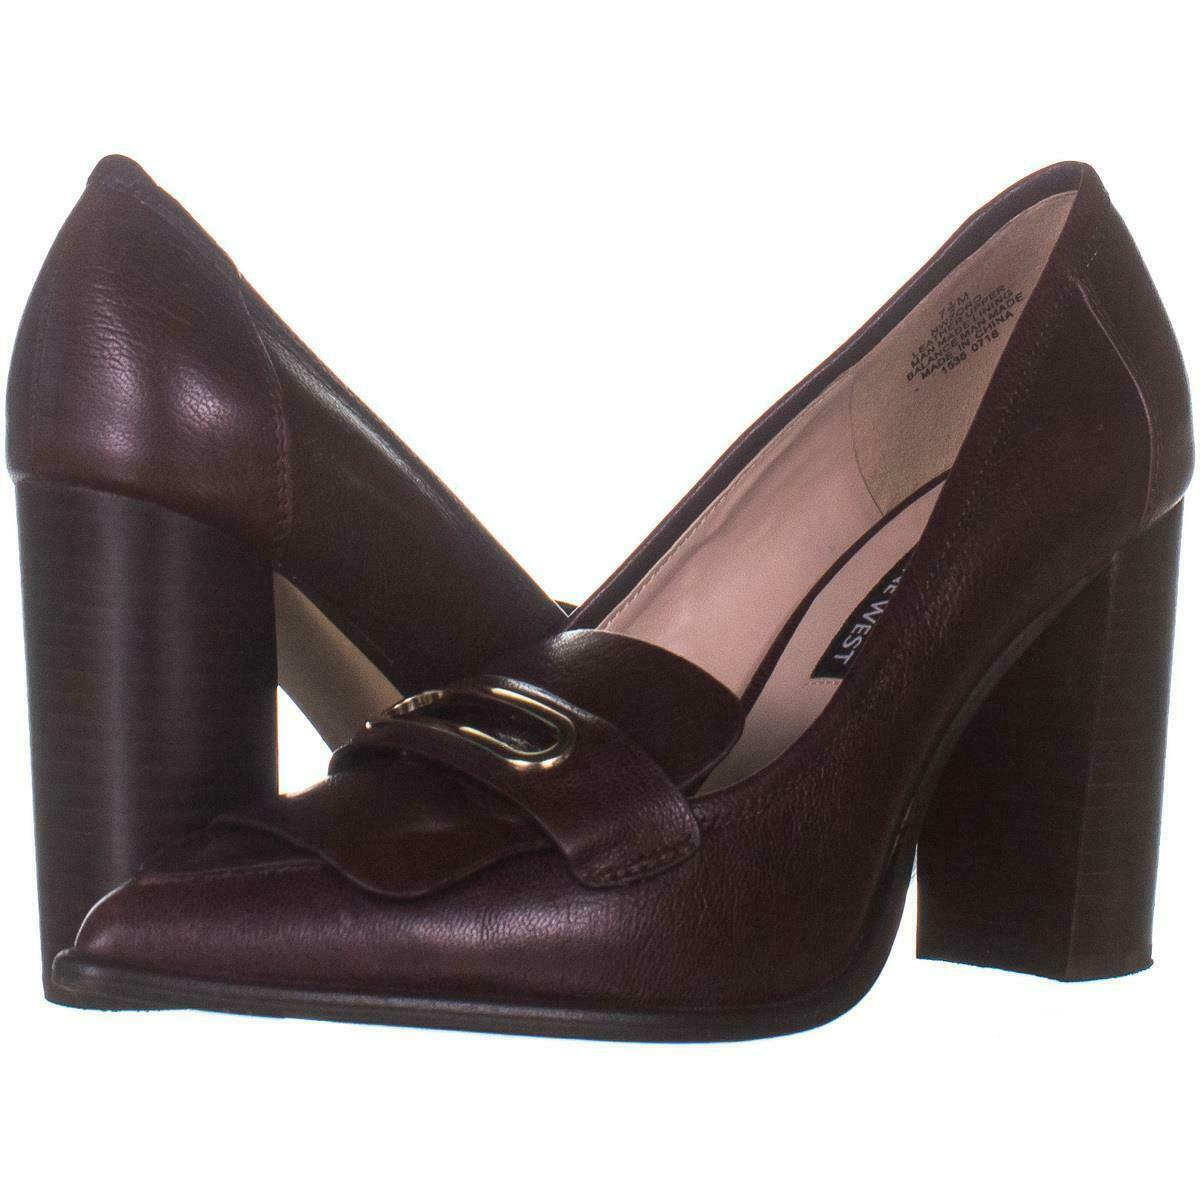 Nine West Zoro Pointed Toe Loafer Style Classic Heels 366, Dark Purple, 7.5 US - $28.79